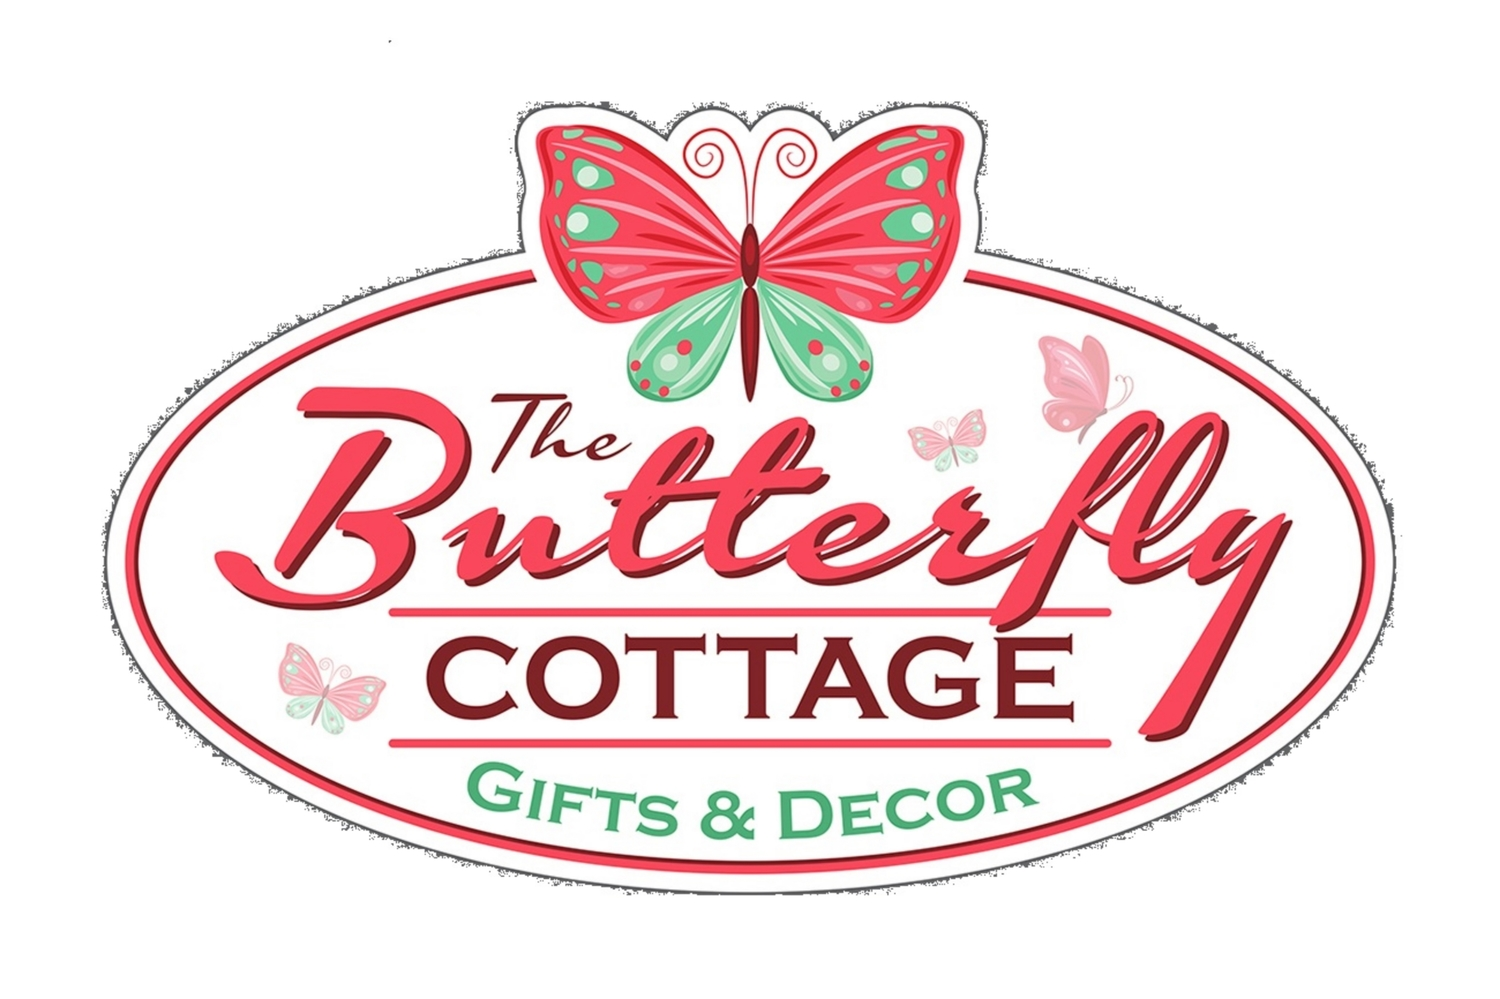 The Butterfly Cottage Gifts & Decor